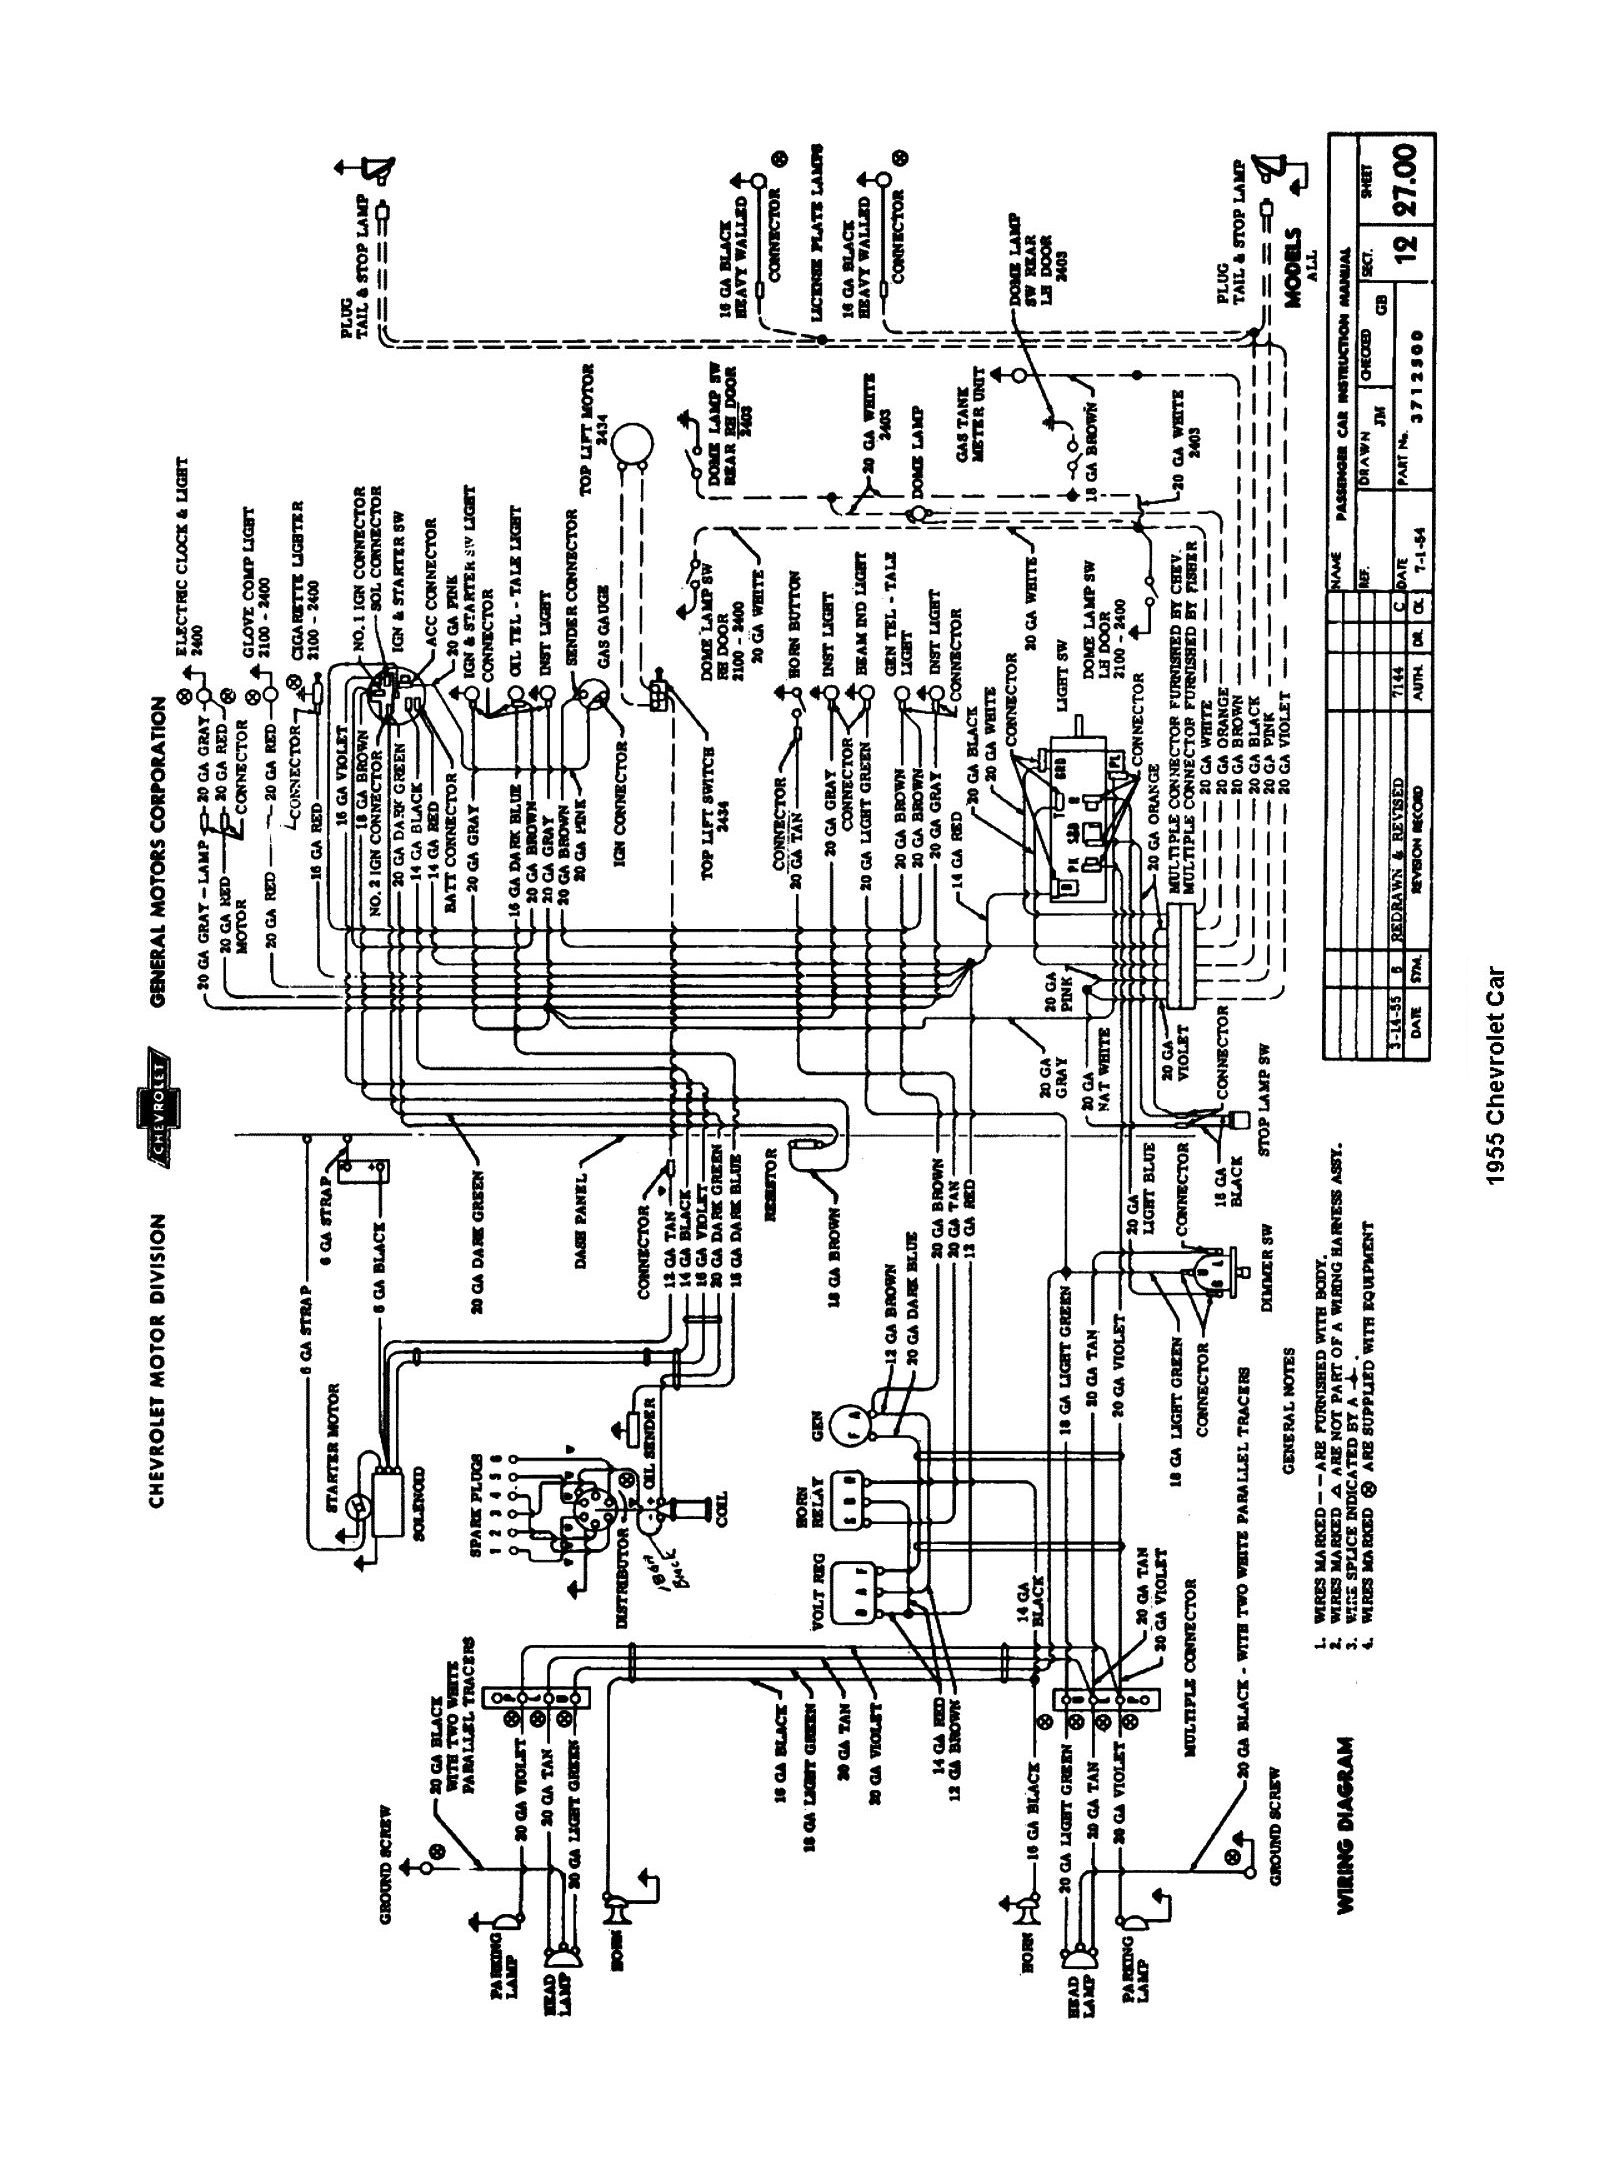 79 Chevy Pickup Wiring Diagram - 05 Corvette Wiring Schematics for Wiring  Diagram SchematicsWiring Diagram Schematics